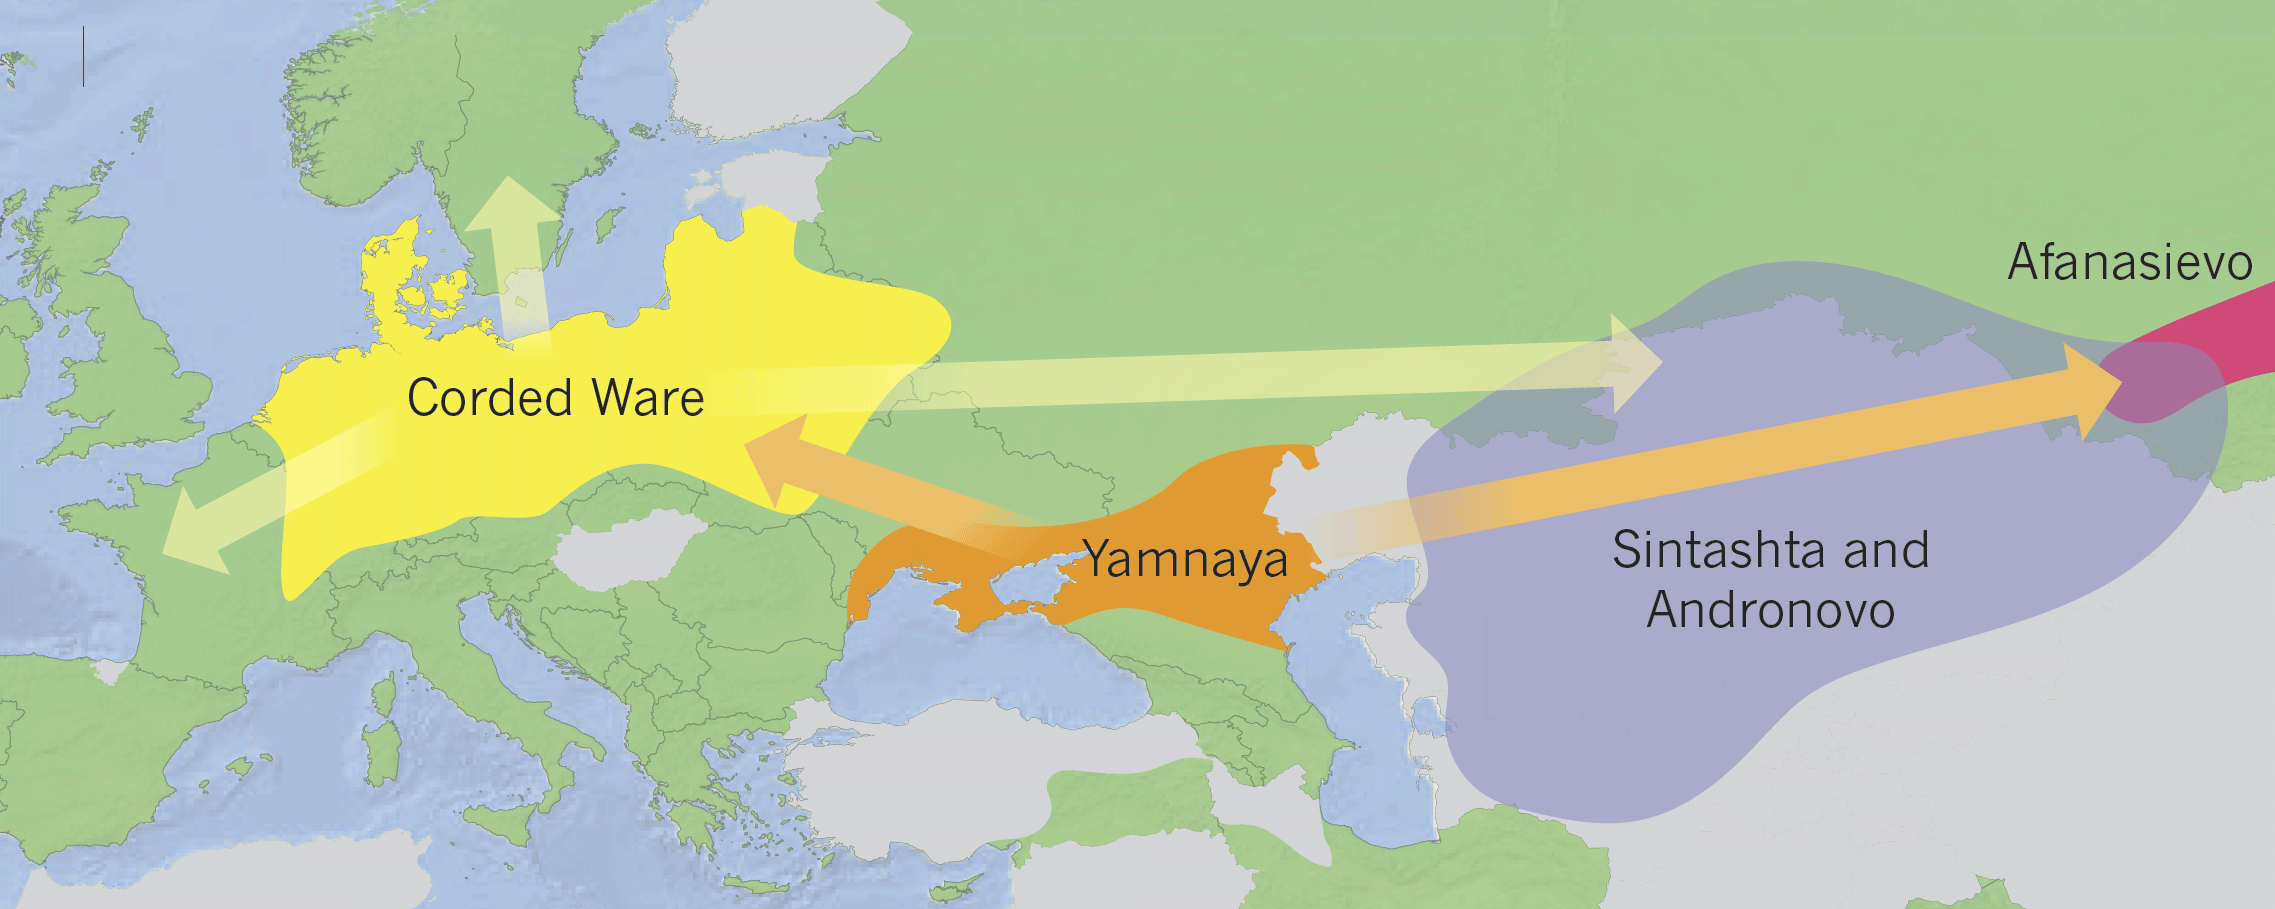 A Vedic Aryan Homeland in the Steppes? A Critique of the Kurgan Hypothesis